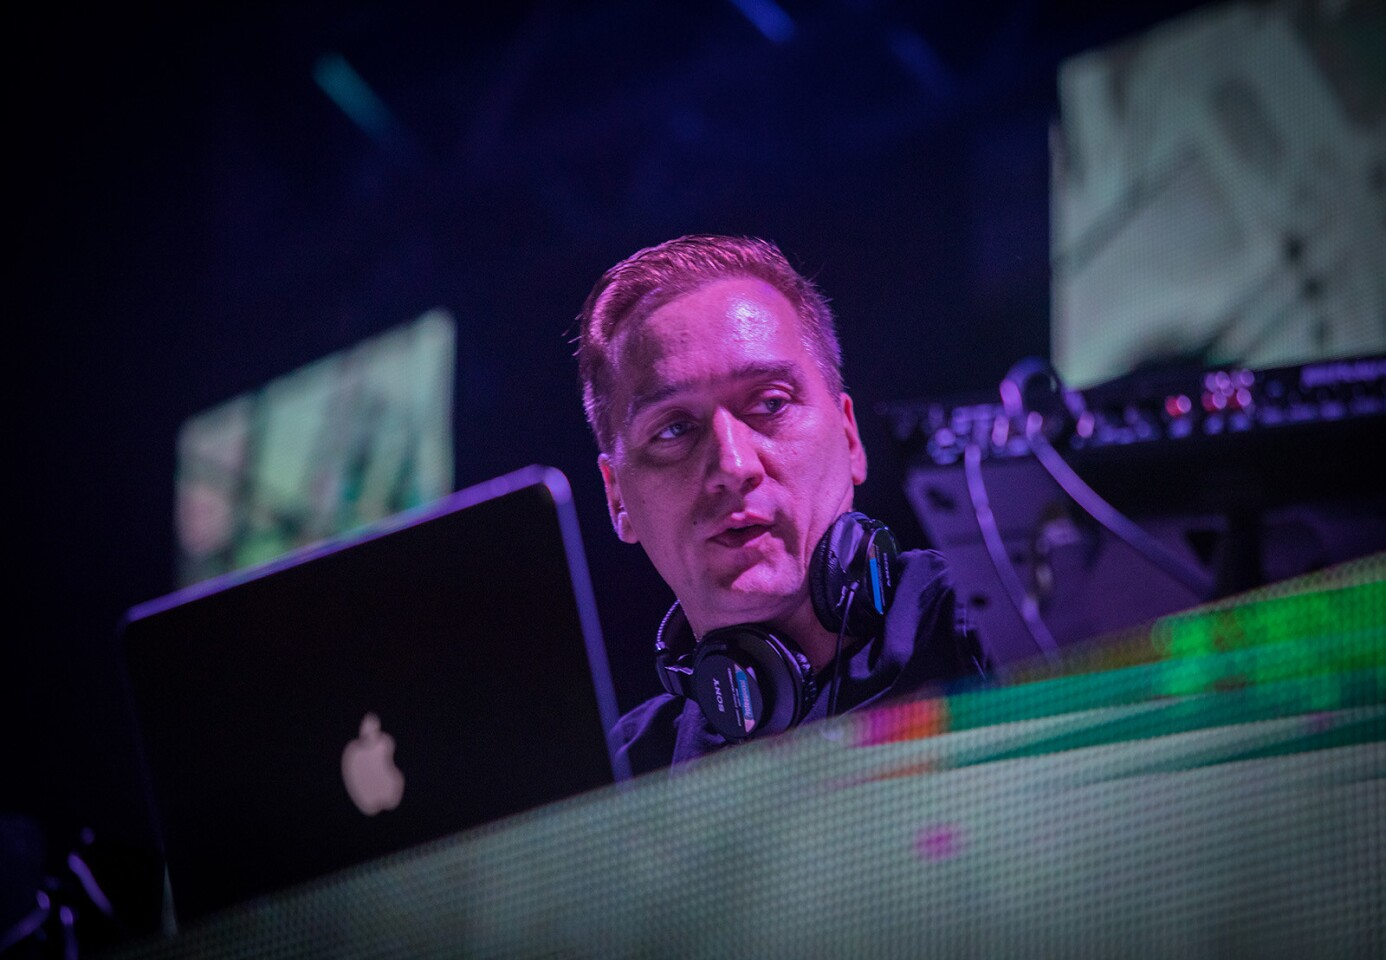 The House of Blues San Diego welcomed Paul Van Dyk to the stage for an epic live DJ set on Friday, May 26, 2017. (John Audley)